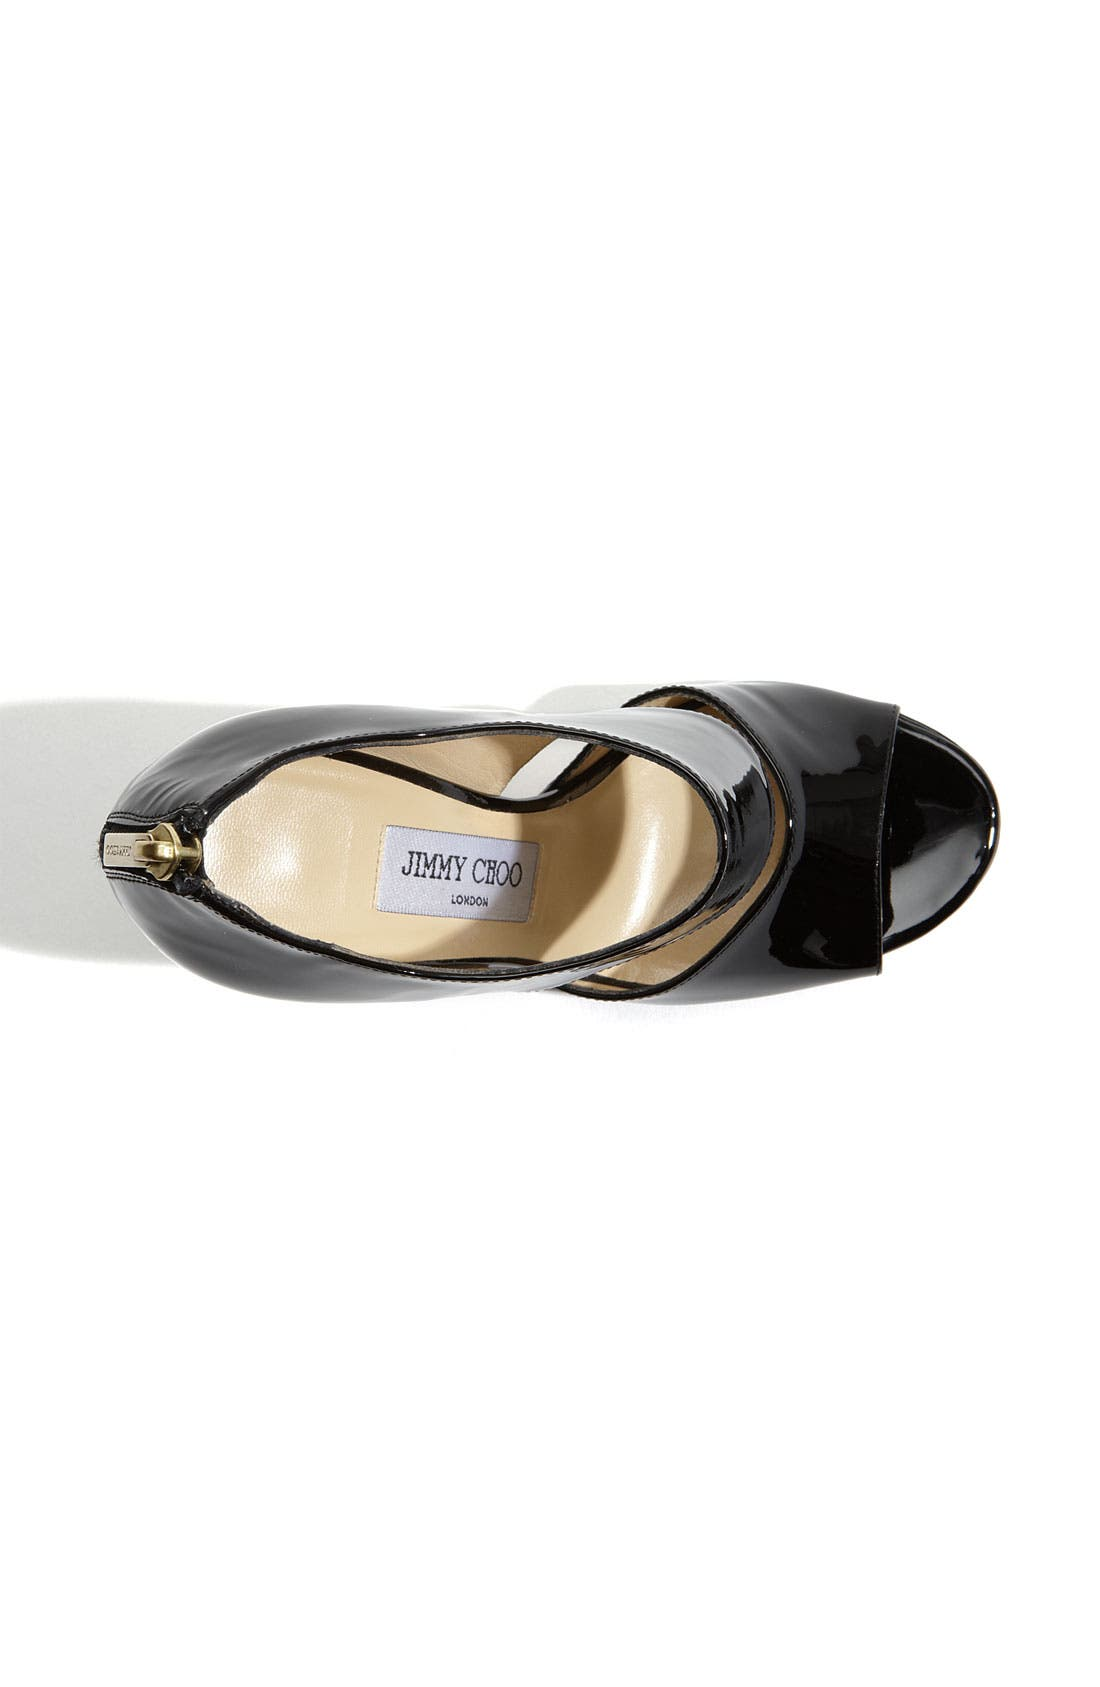 Alternate Image 3  - Jimmy Choo 'Private' Cuff Patent Leather Sandal